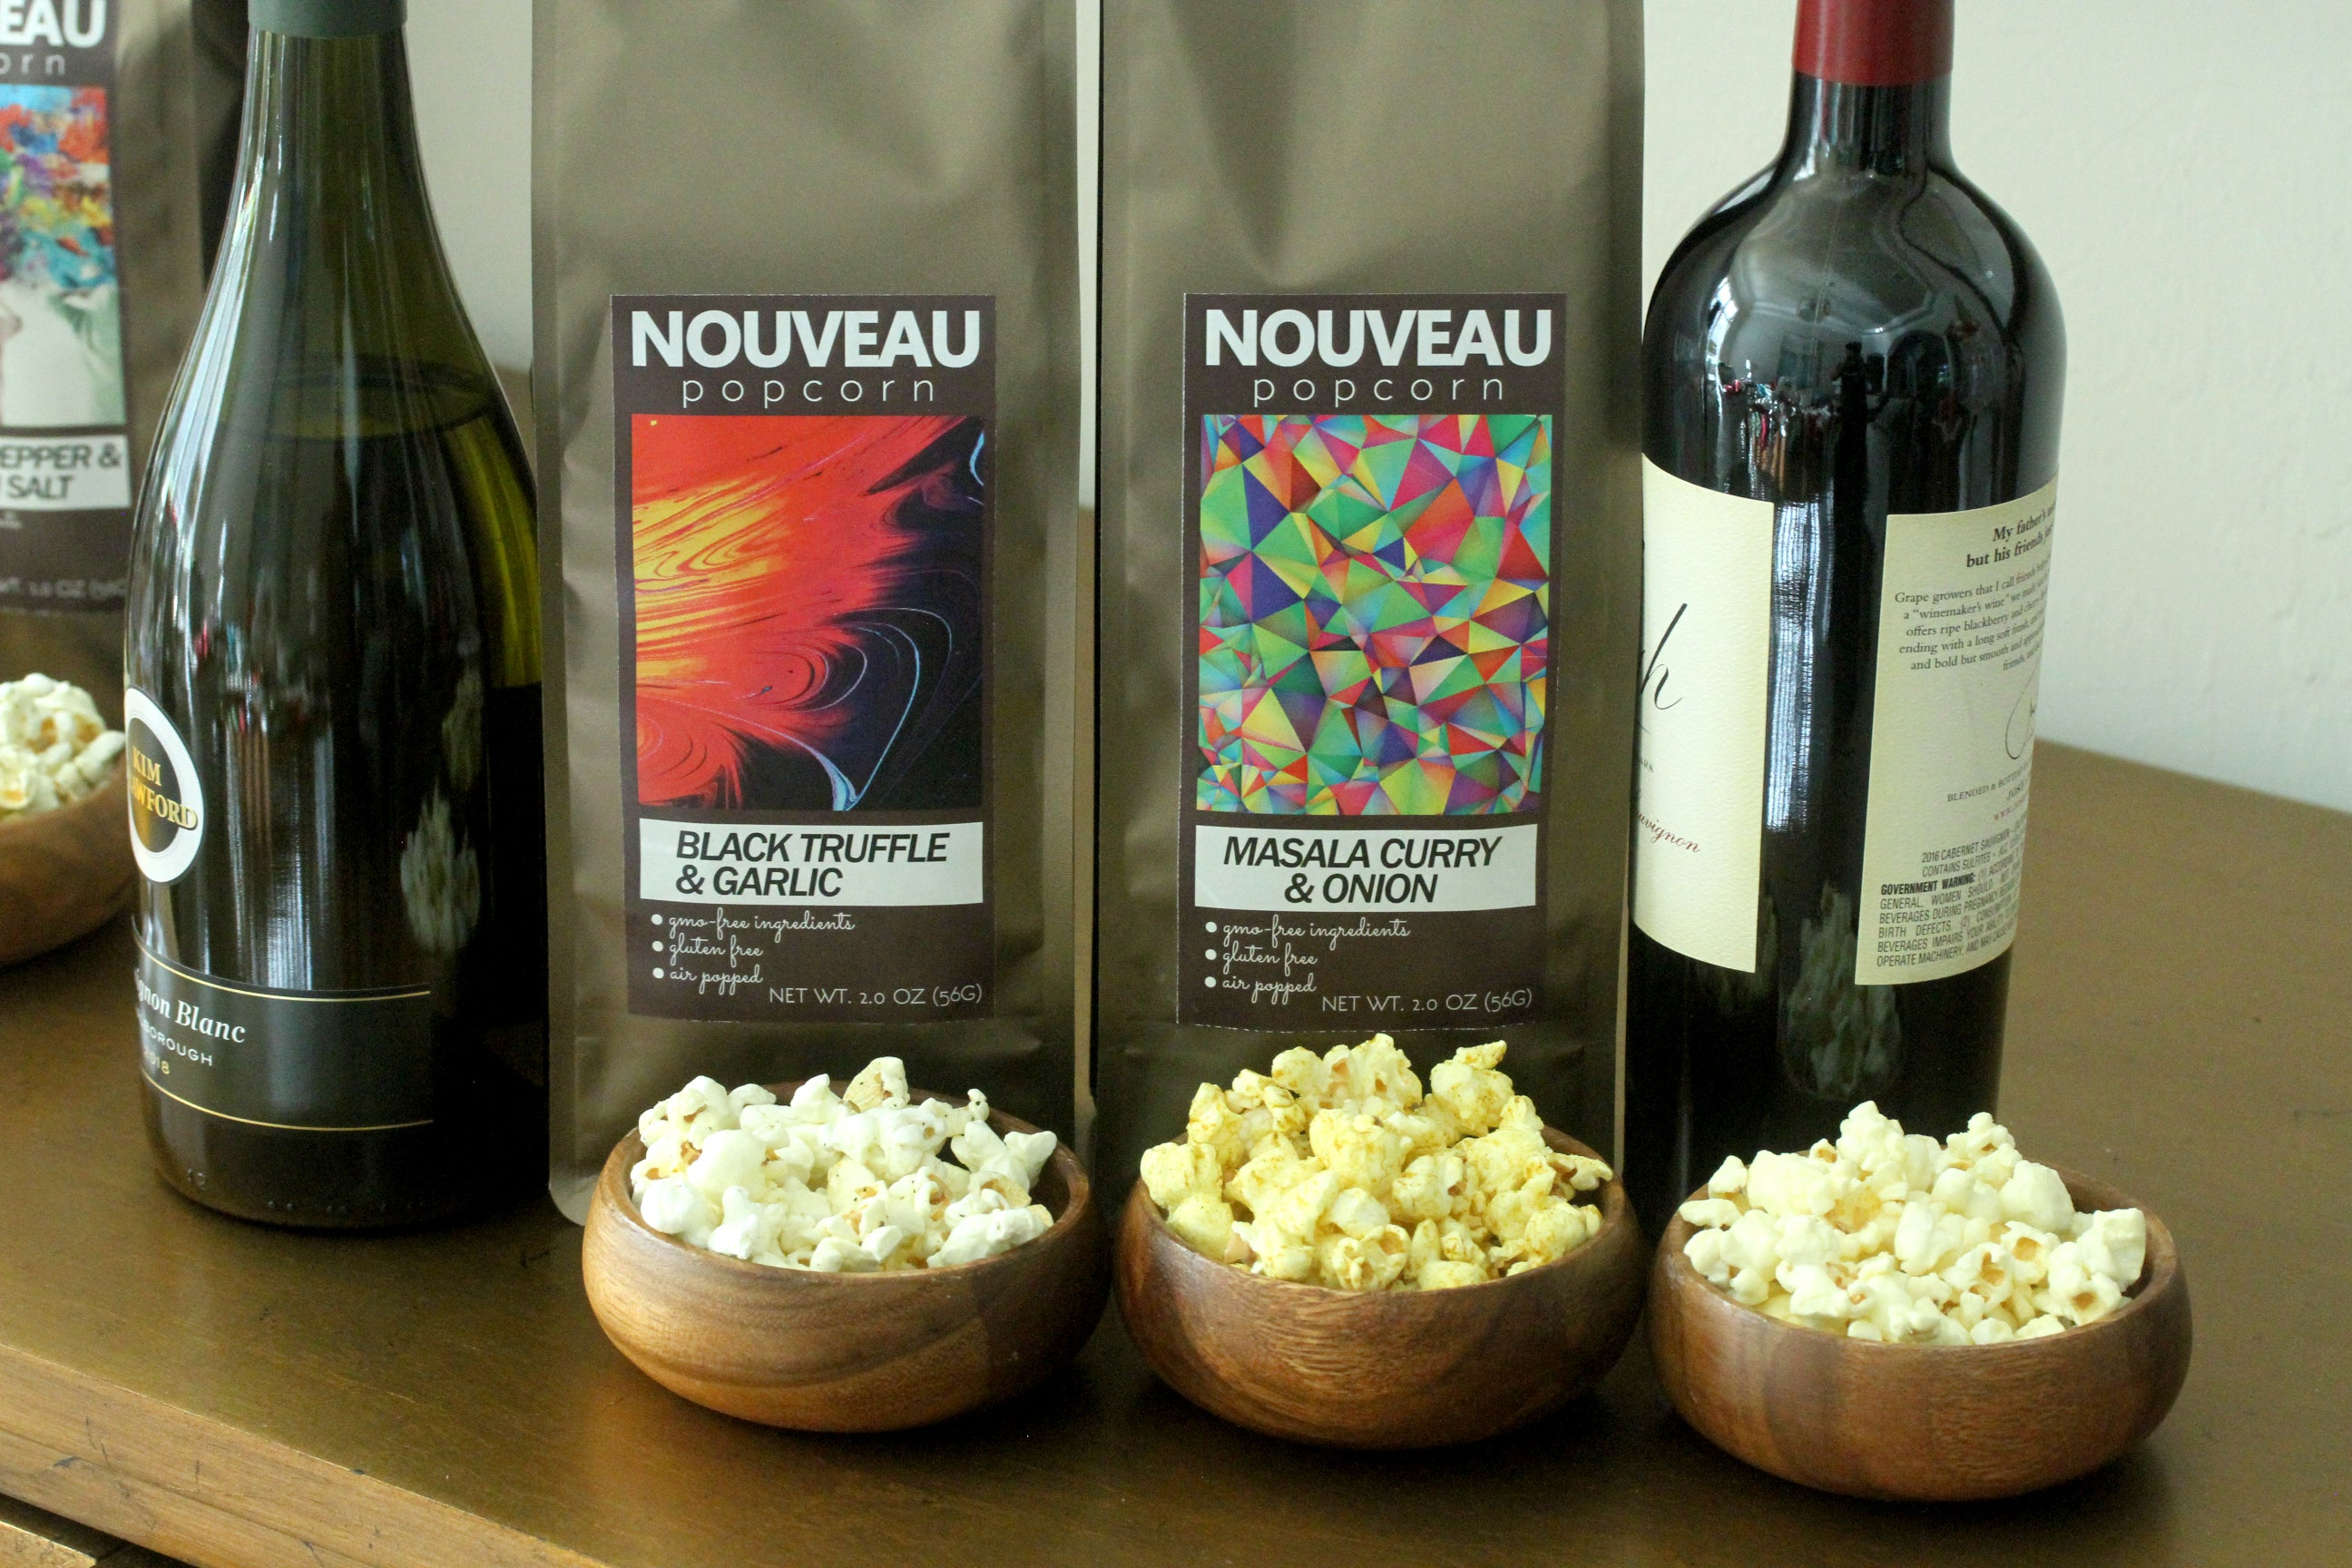 Free Shipping - Nouveau Popcorn Set with 4 Flavors -  Salted Caramel Cocoa Nib, White Cheddar Black Pepper, Umami Sesame Seed & Pink Salt, Black Truffle Garlic, (Shipping calculates to $0 at checkout)